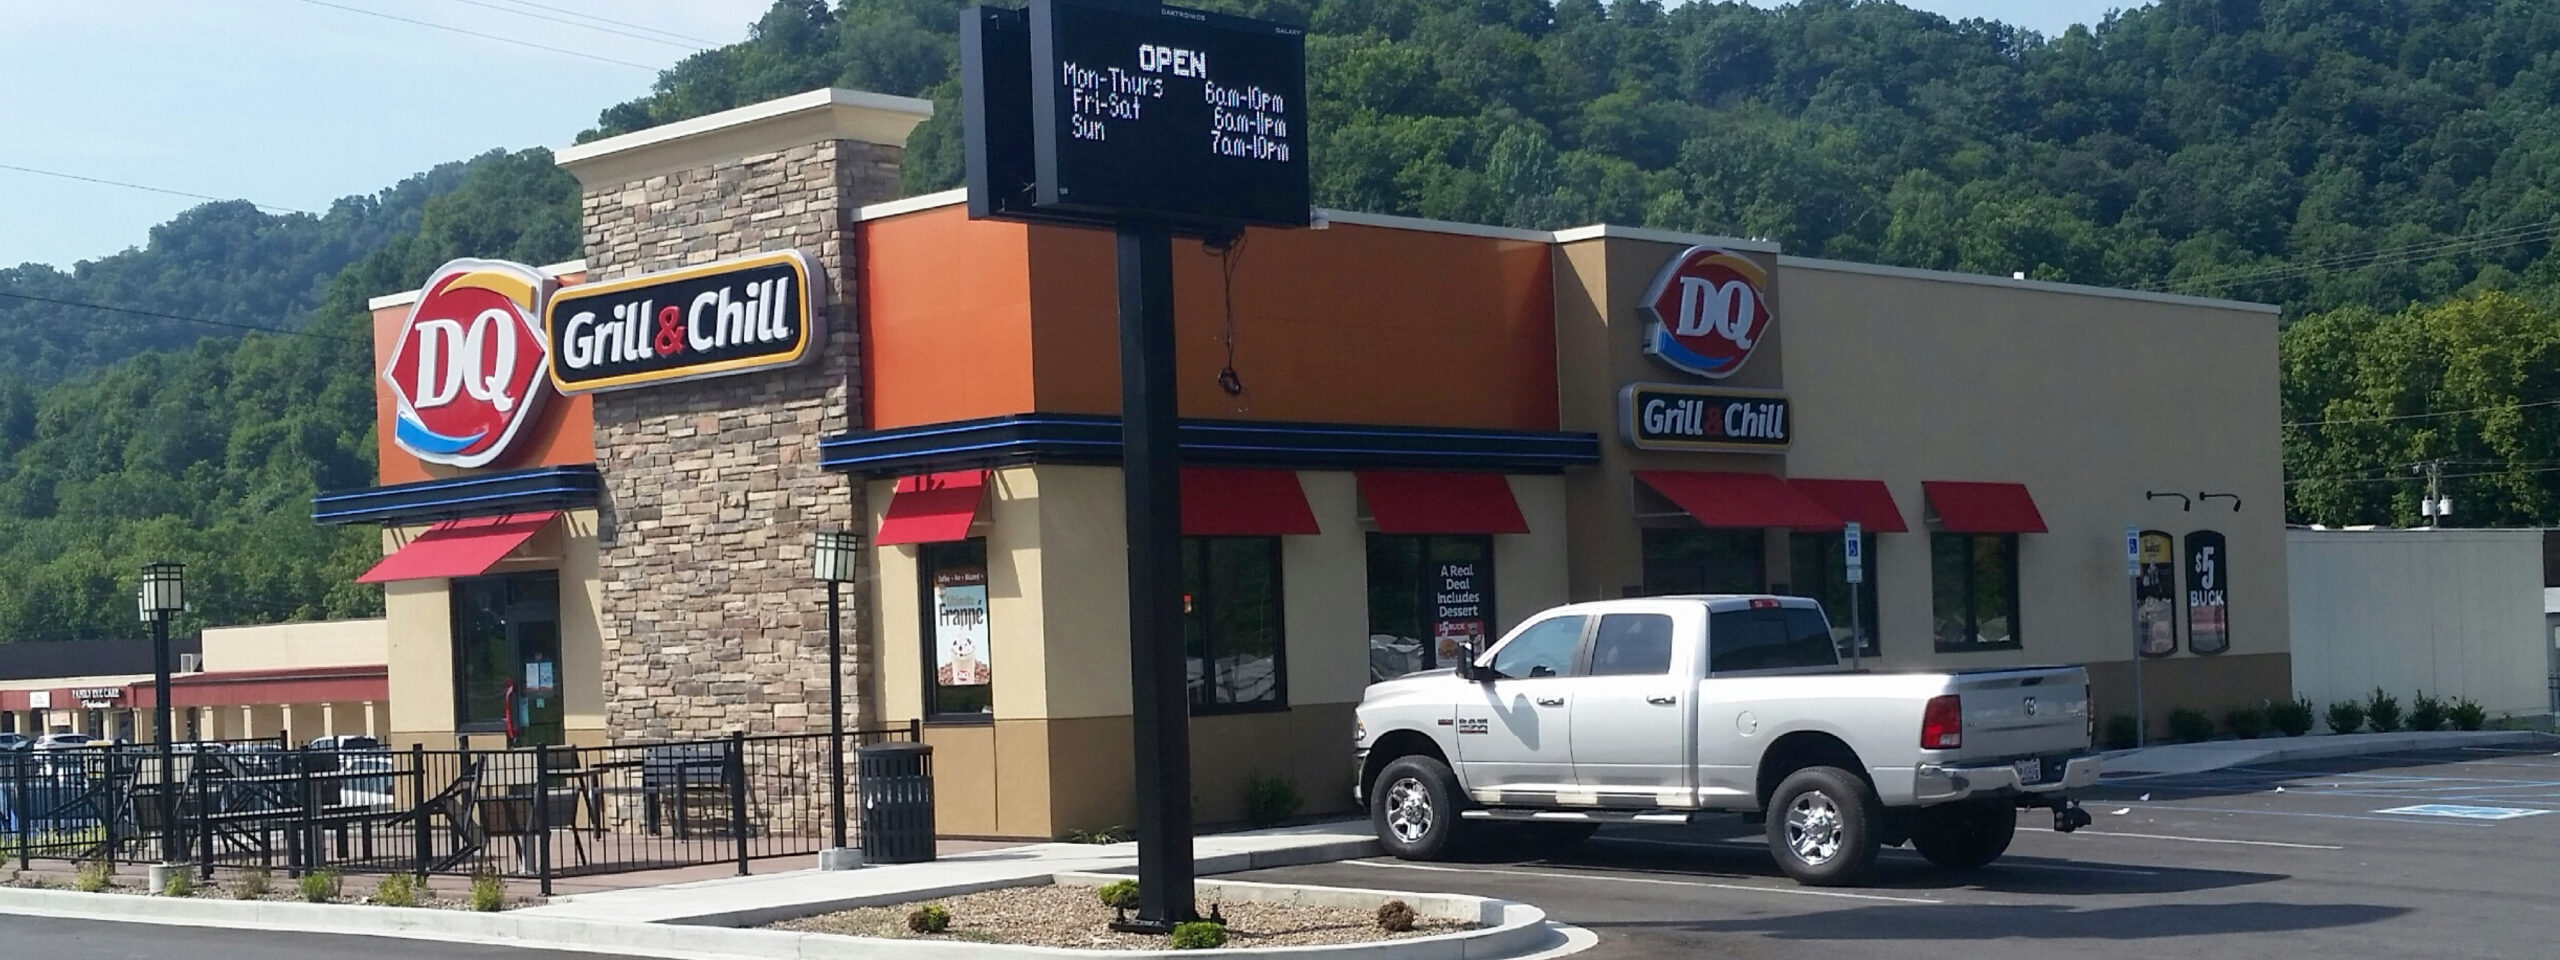 Coal Run, KY Fourteen Foods DQ Restaurant